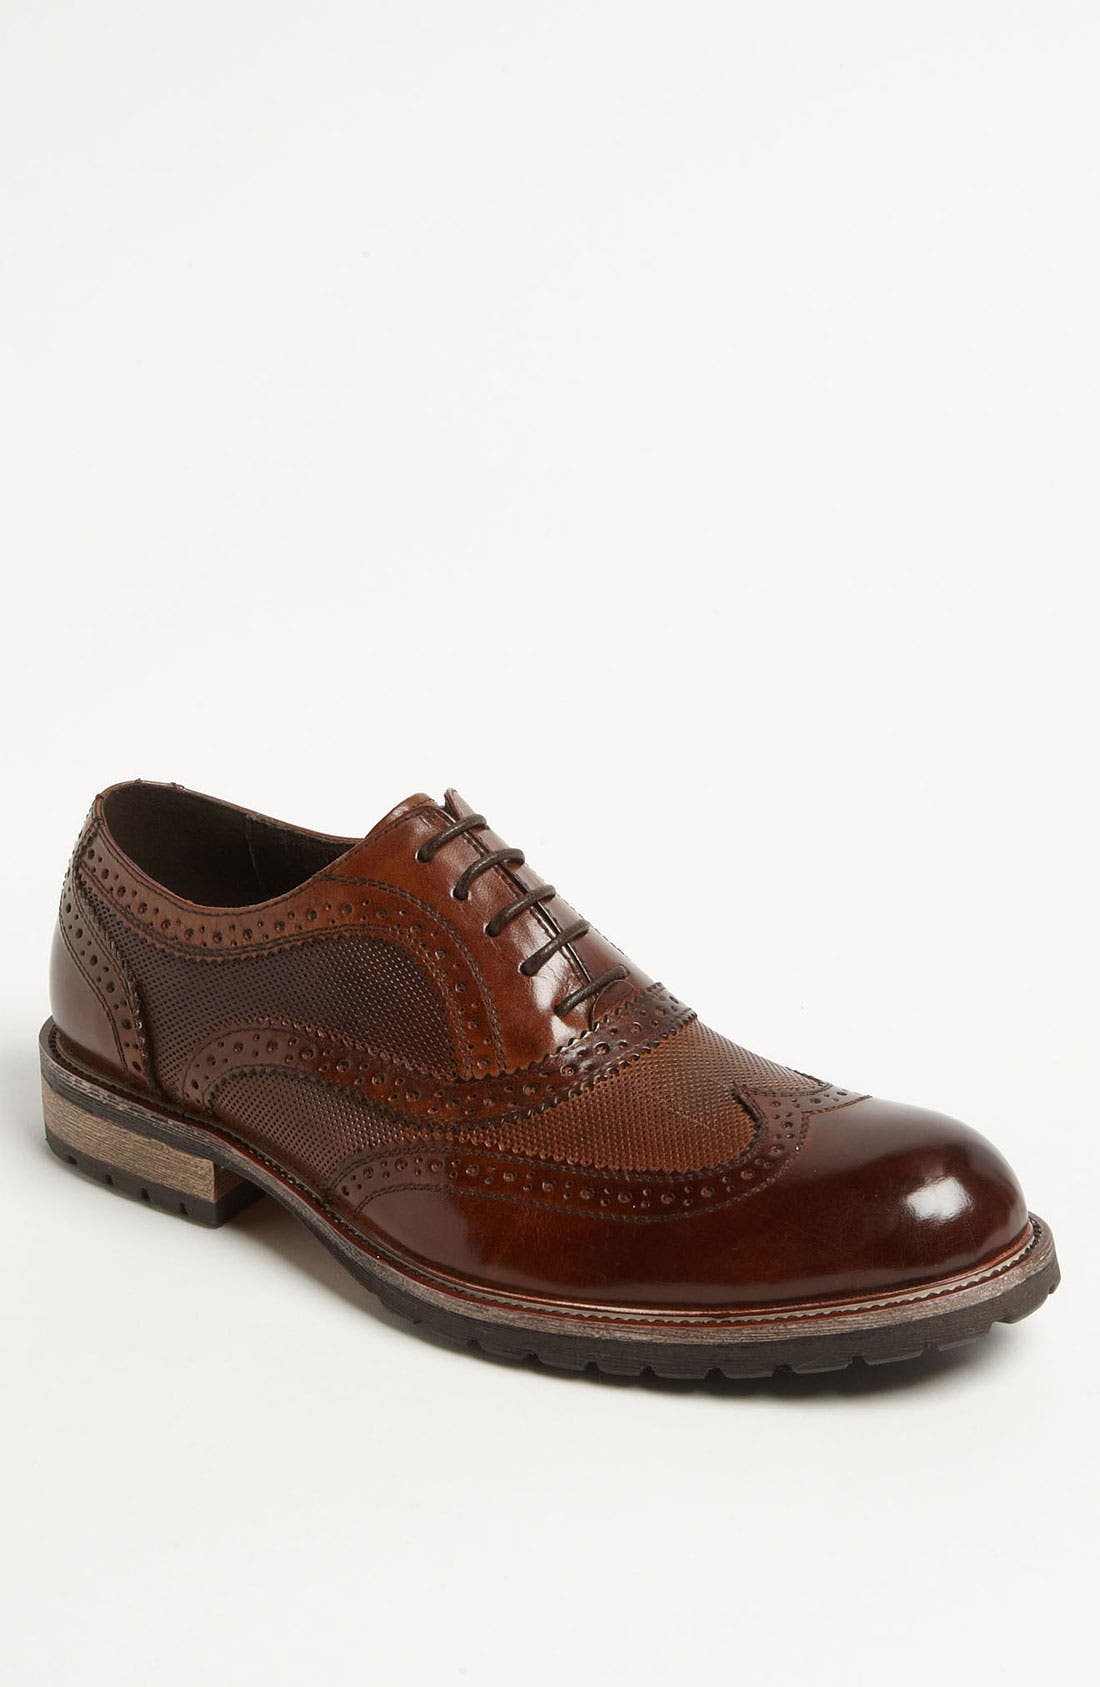 Alternate Image 1 Selected - Steve Madden 'Persey' Wingtip